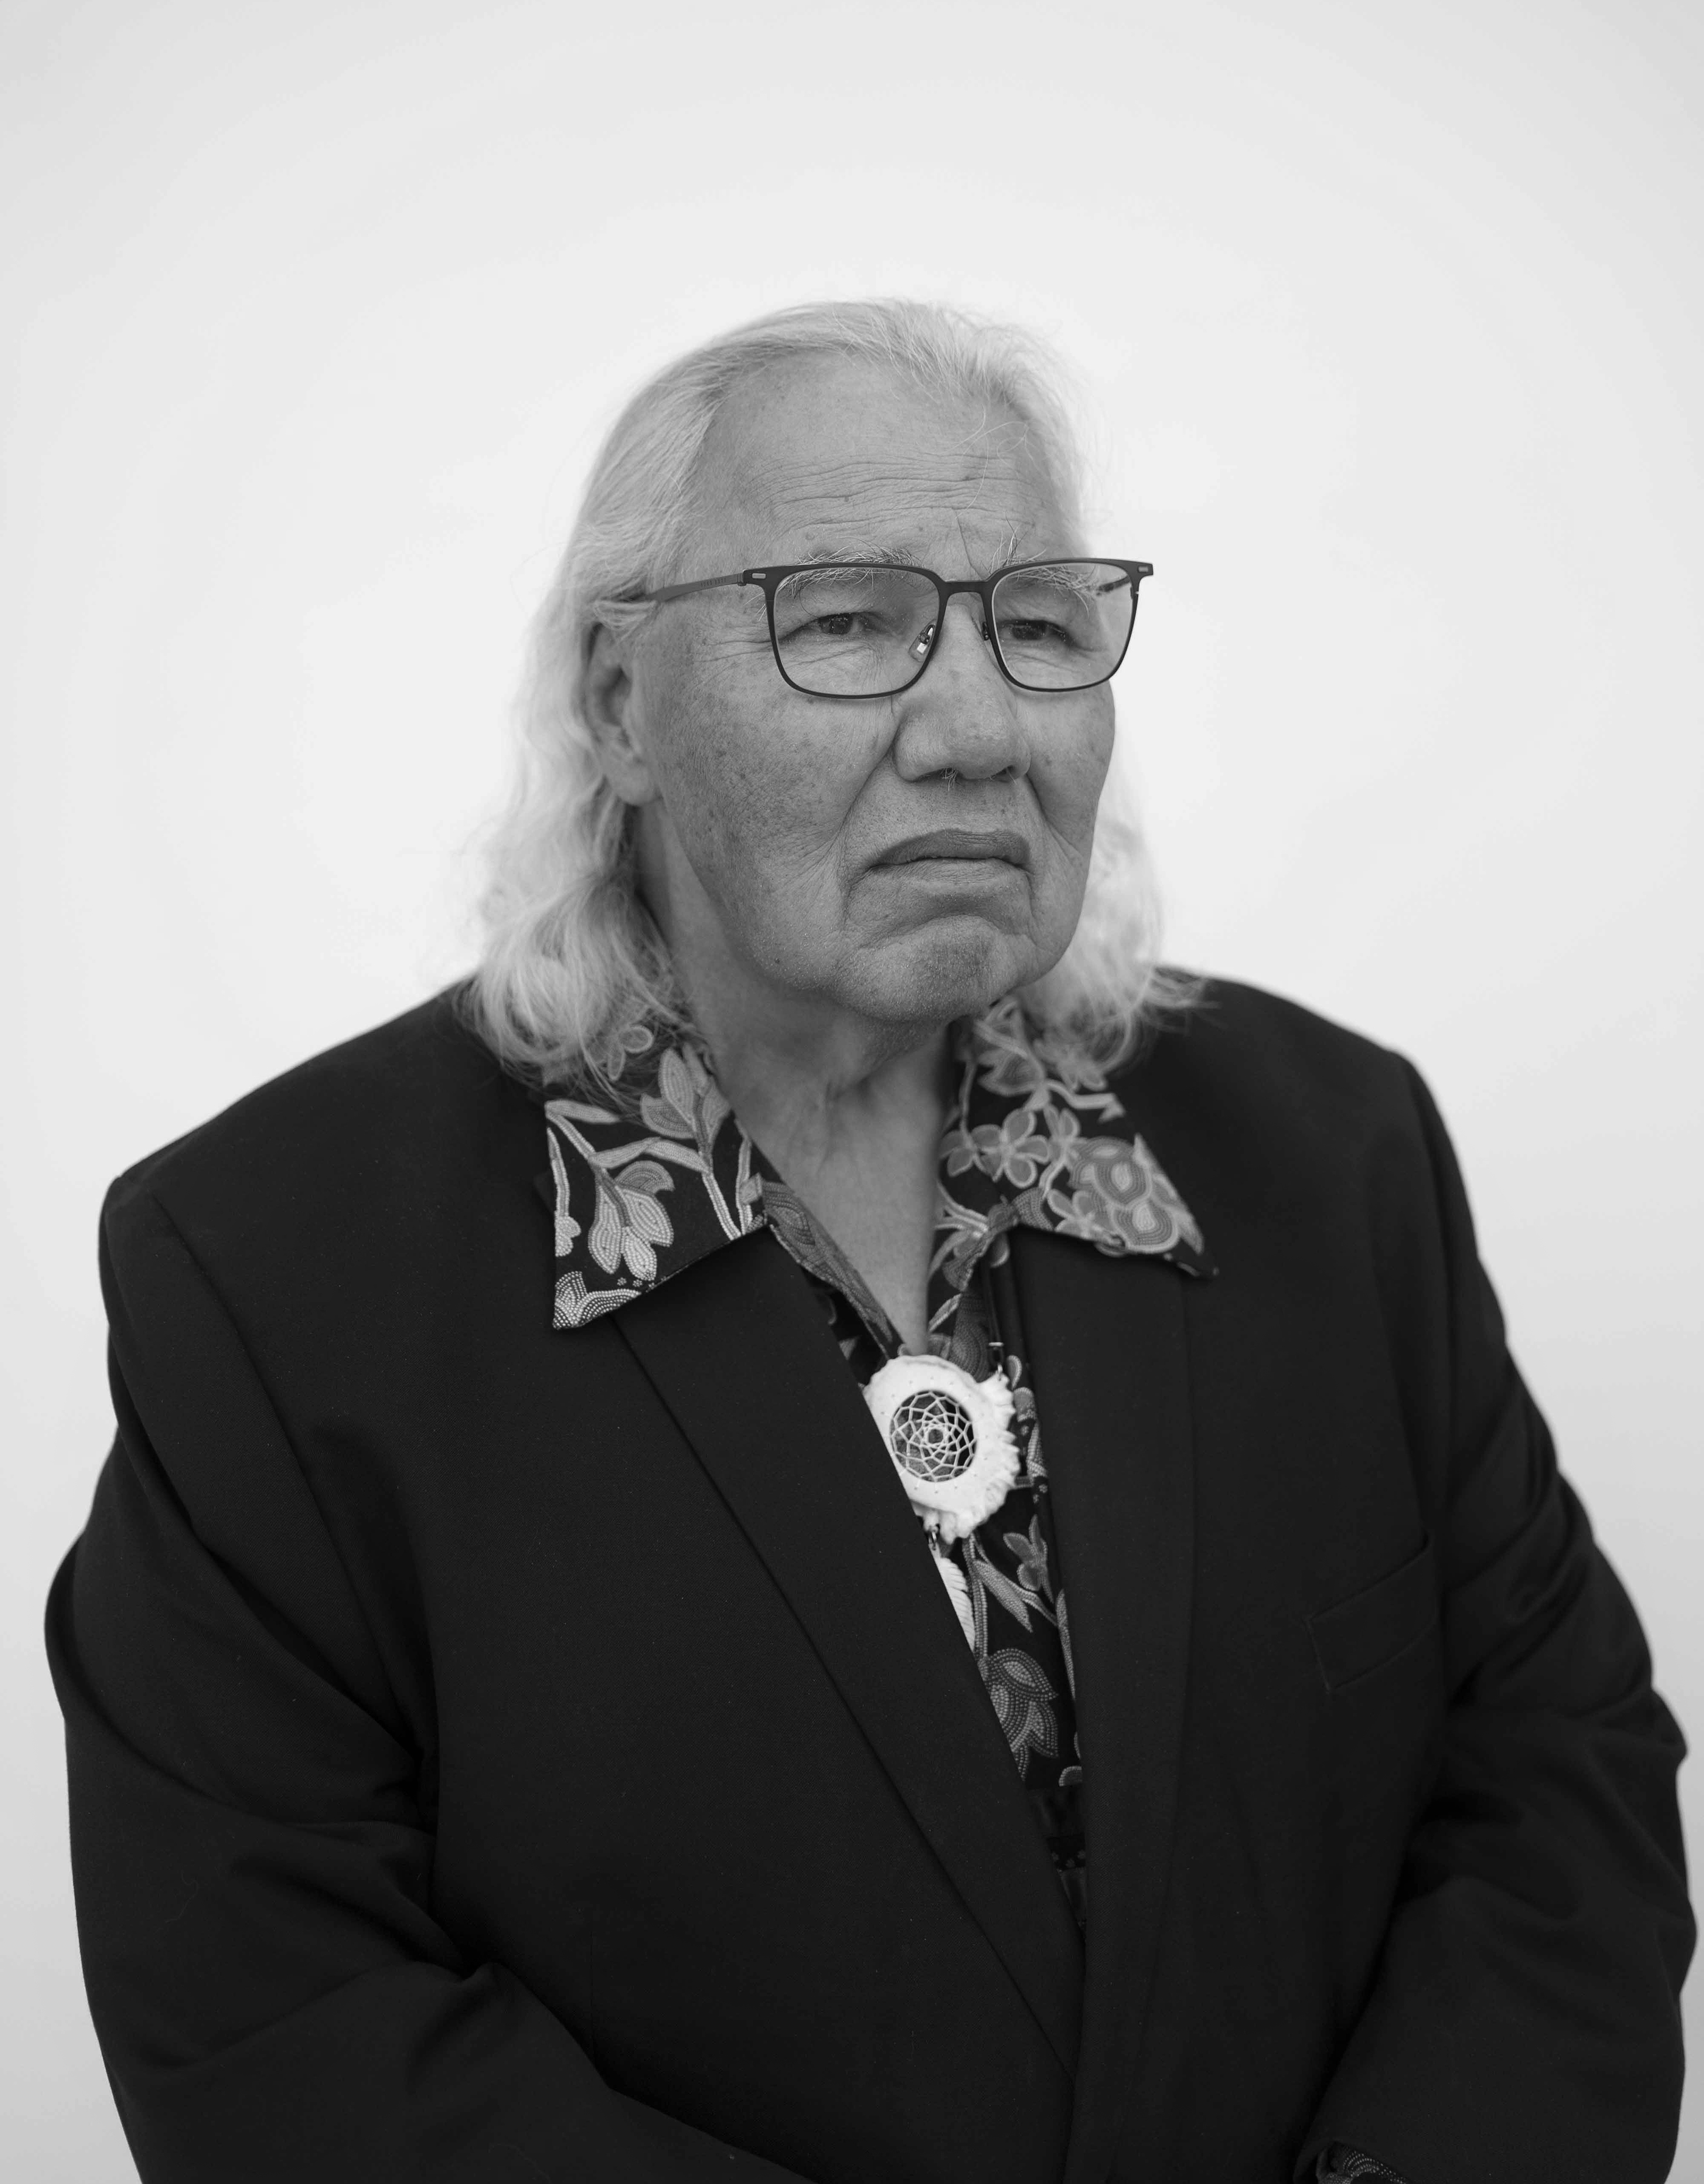 The honourable Murray Sinclair (Photograph by Skye Spence)Murray Sinclair (Photograph by Skye Spence)